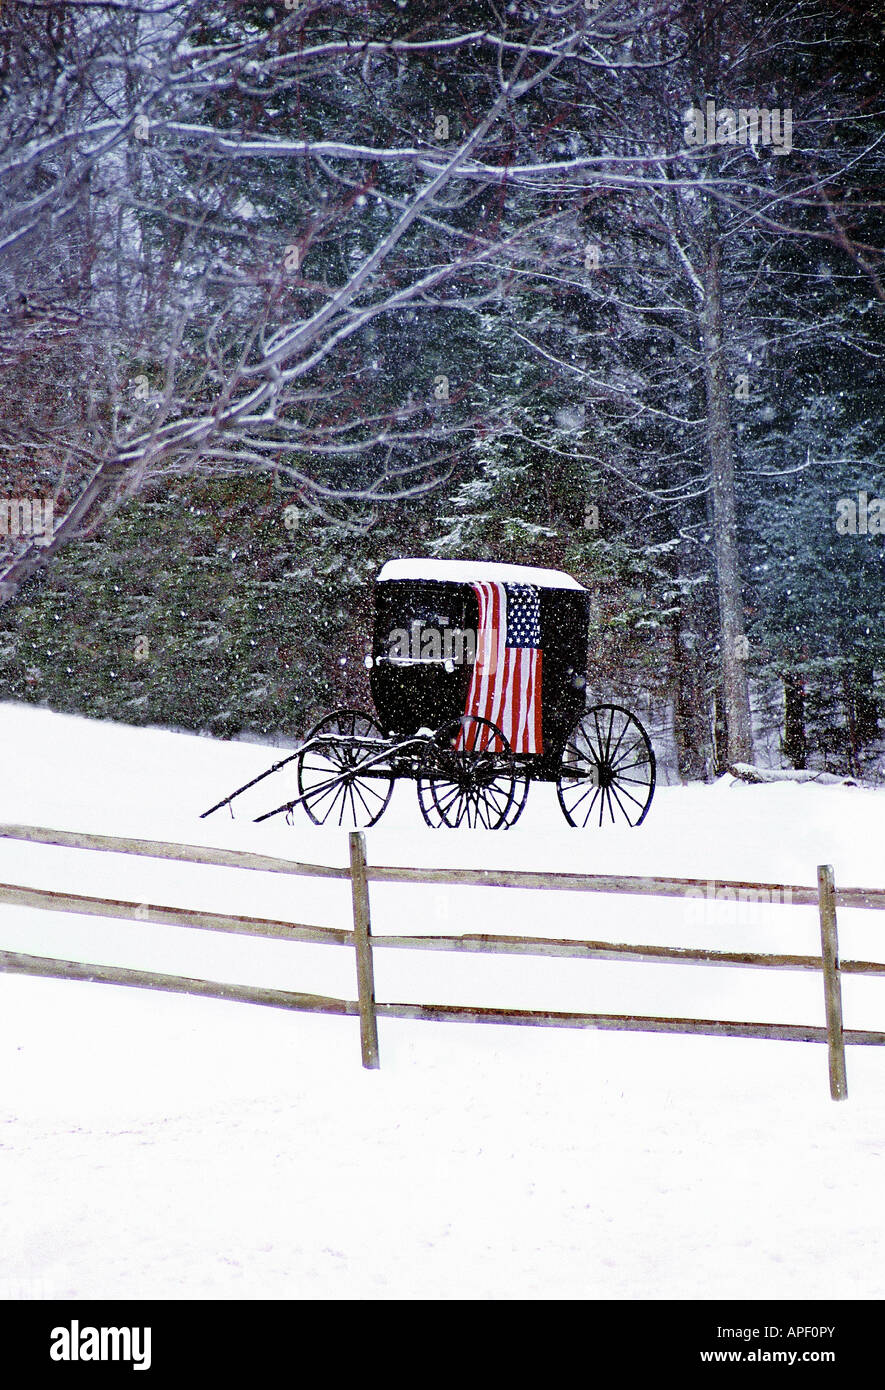 Old fashioned black horse carriage with American flag draped over it in a field of snow with fence (vertical). - Stock Image